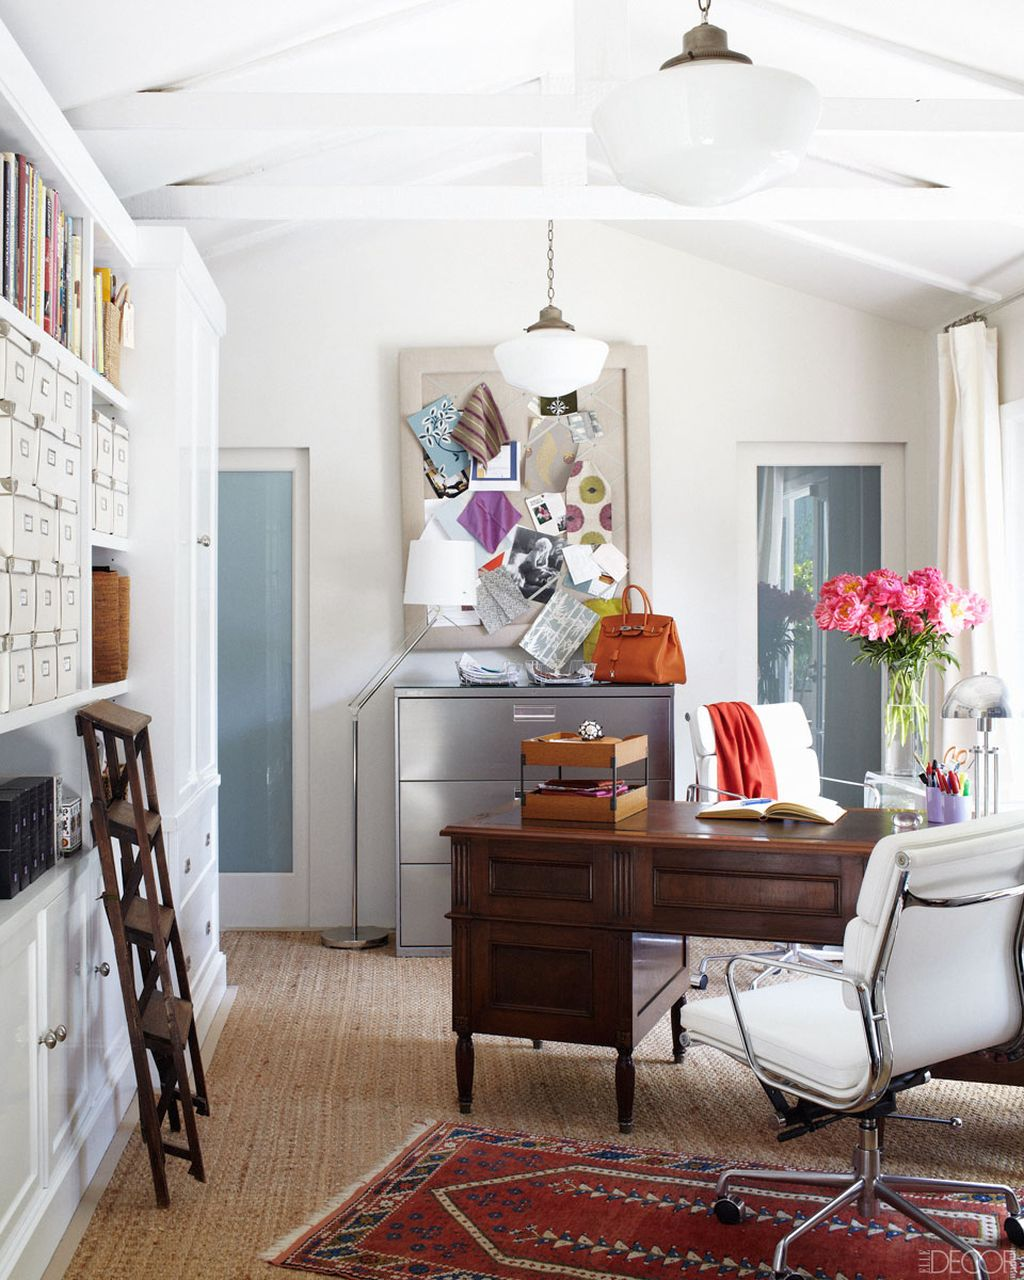 20 inspiring home office design ideas for small spaces for Small spaces ideas for small homes